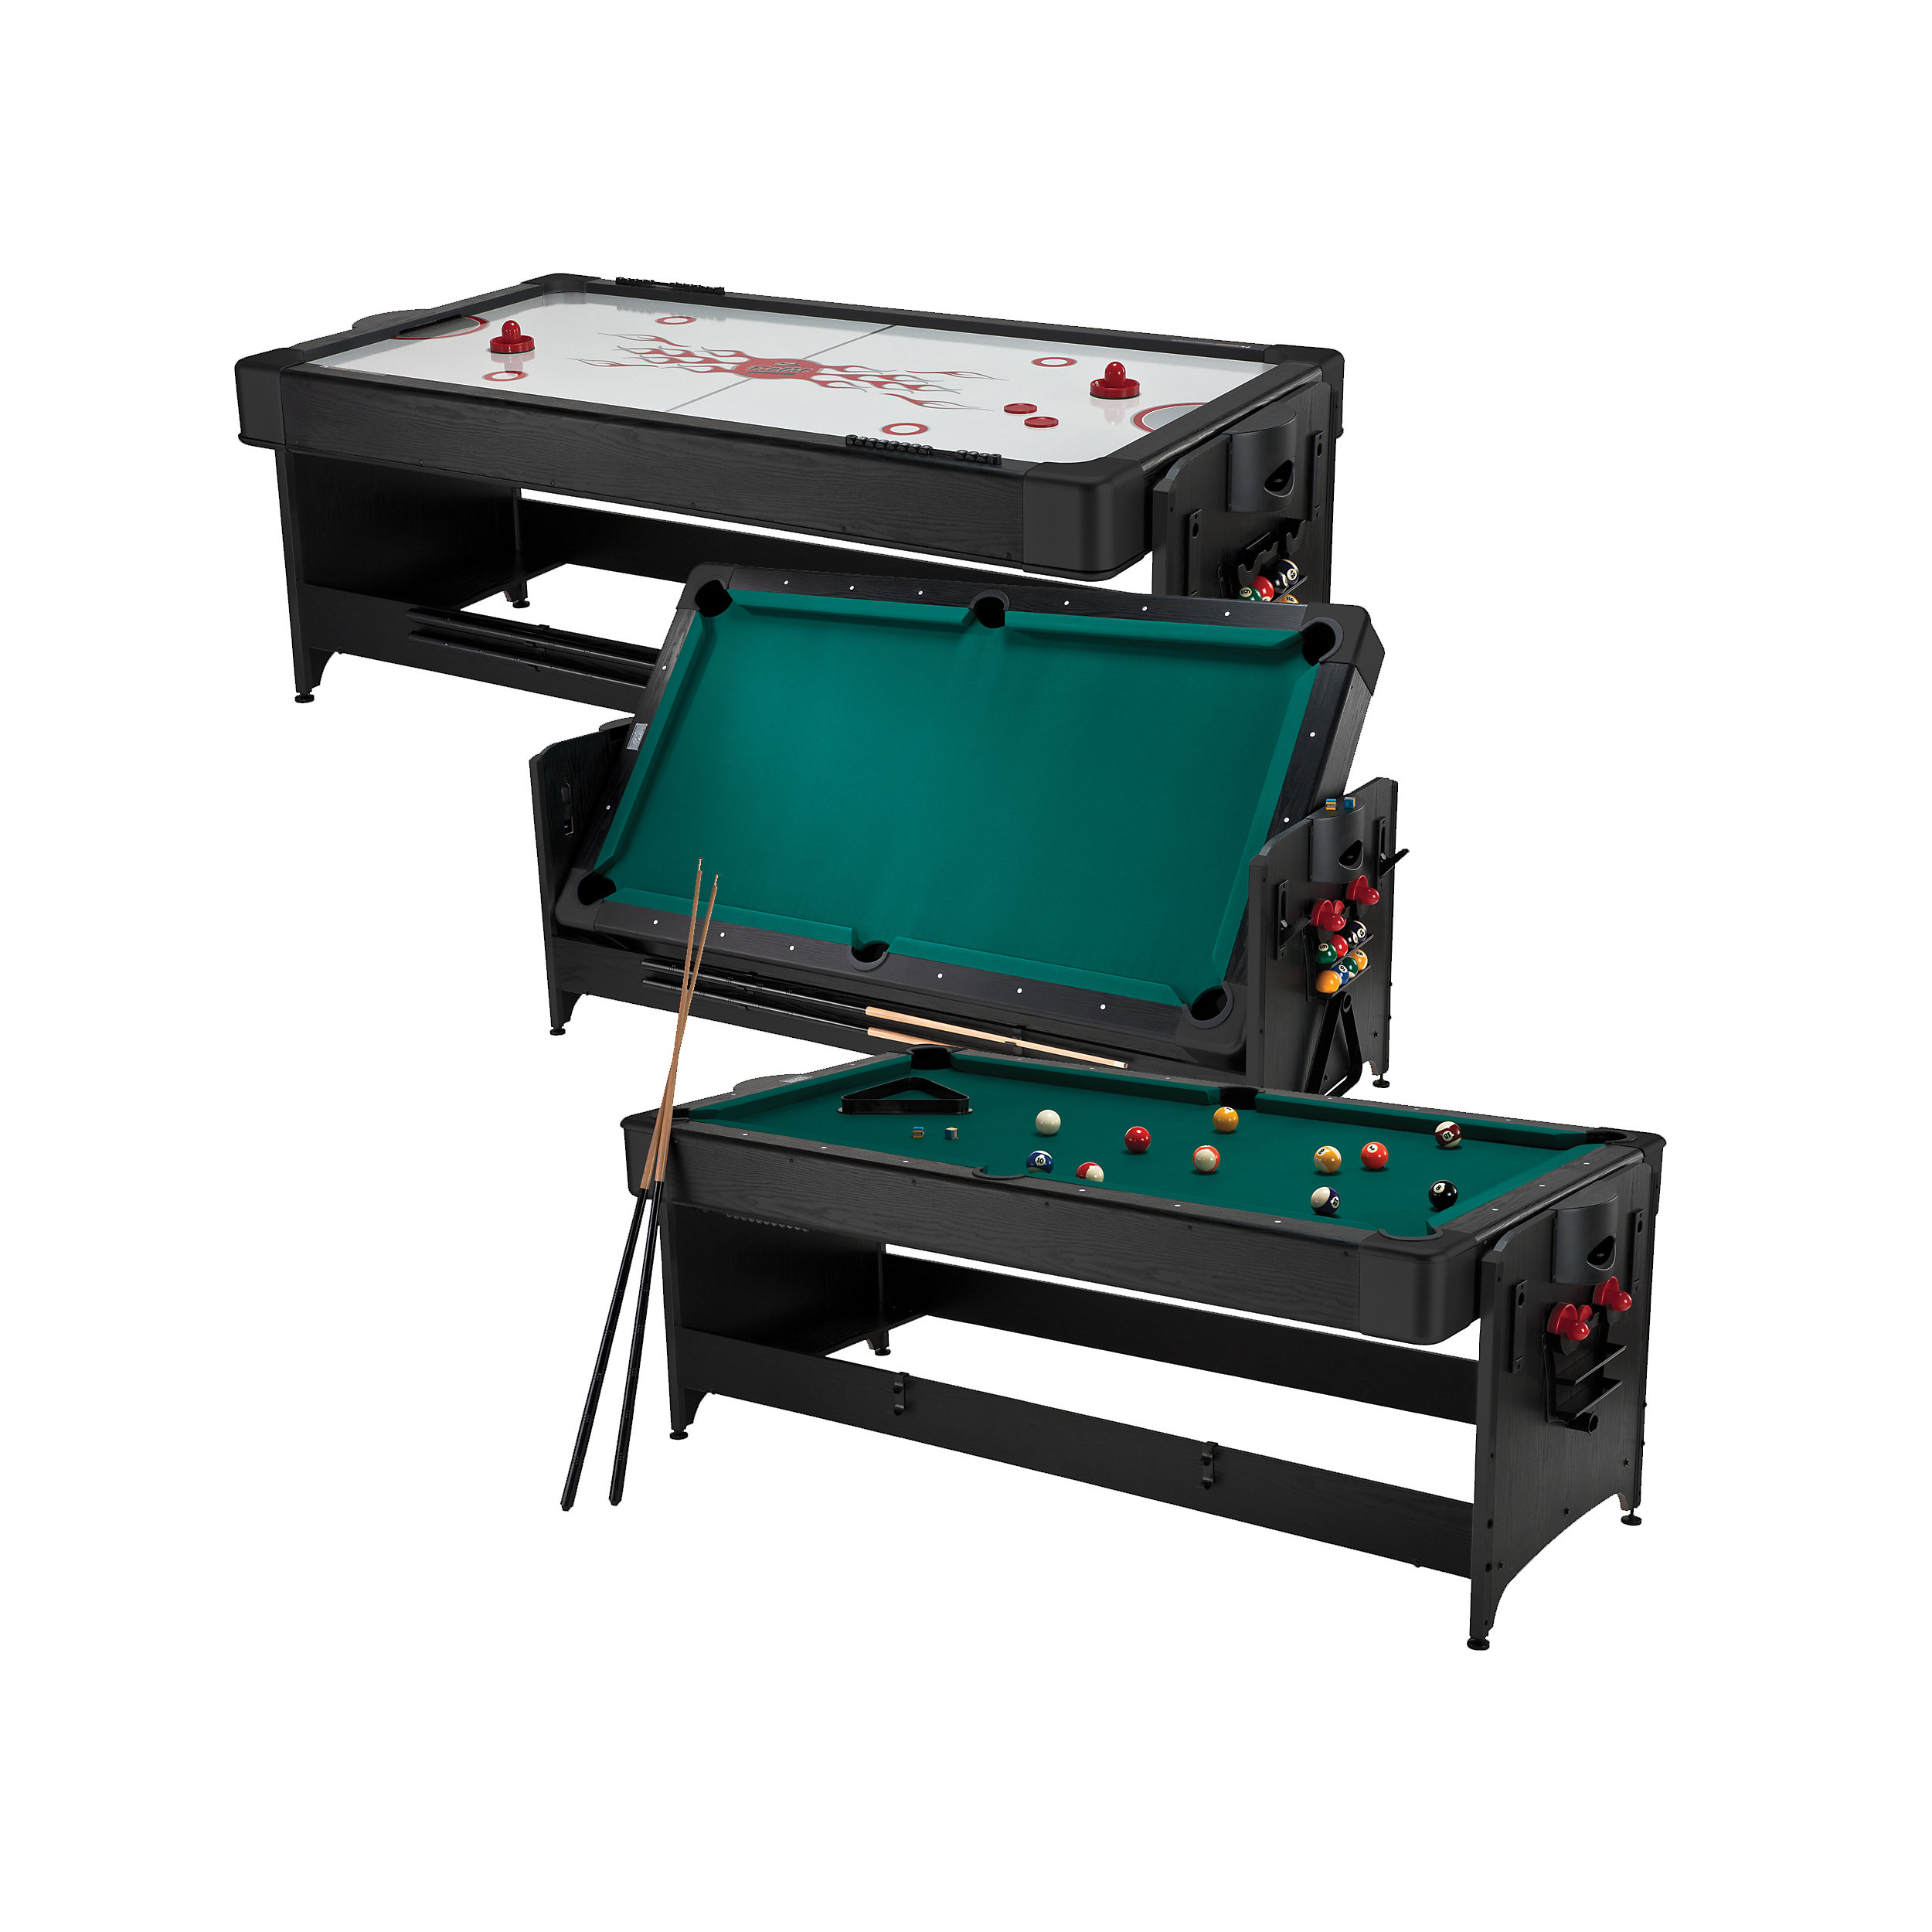 ... Fat Cat Original Pockey 2 In 1 Game Table. Zoom